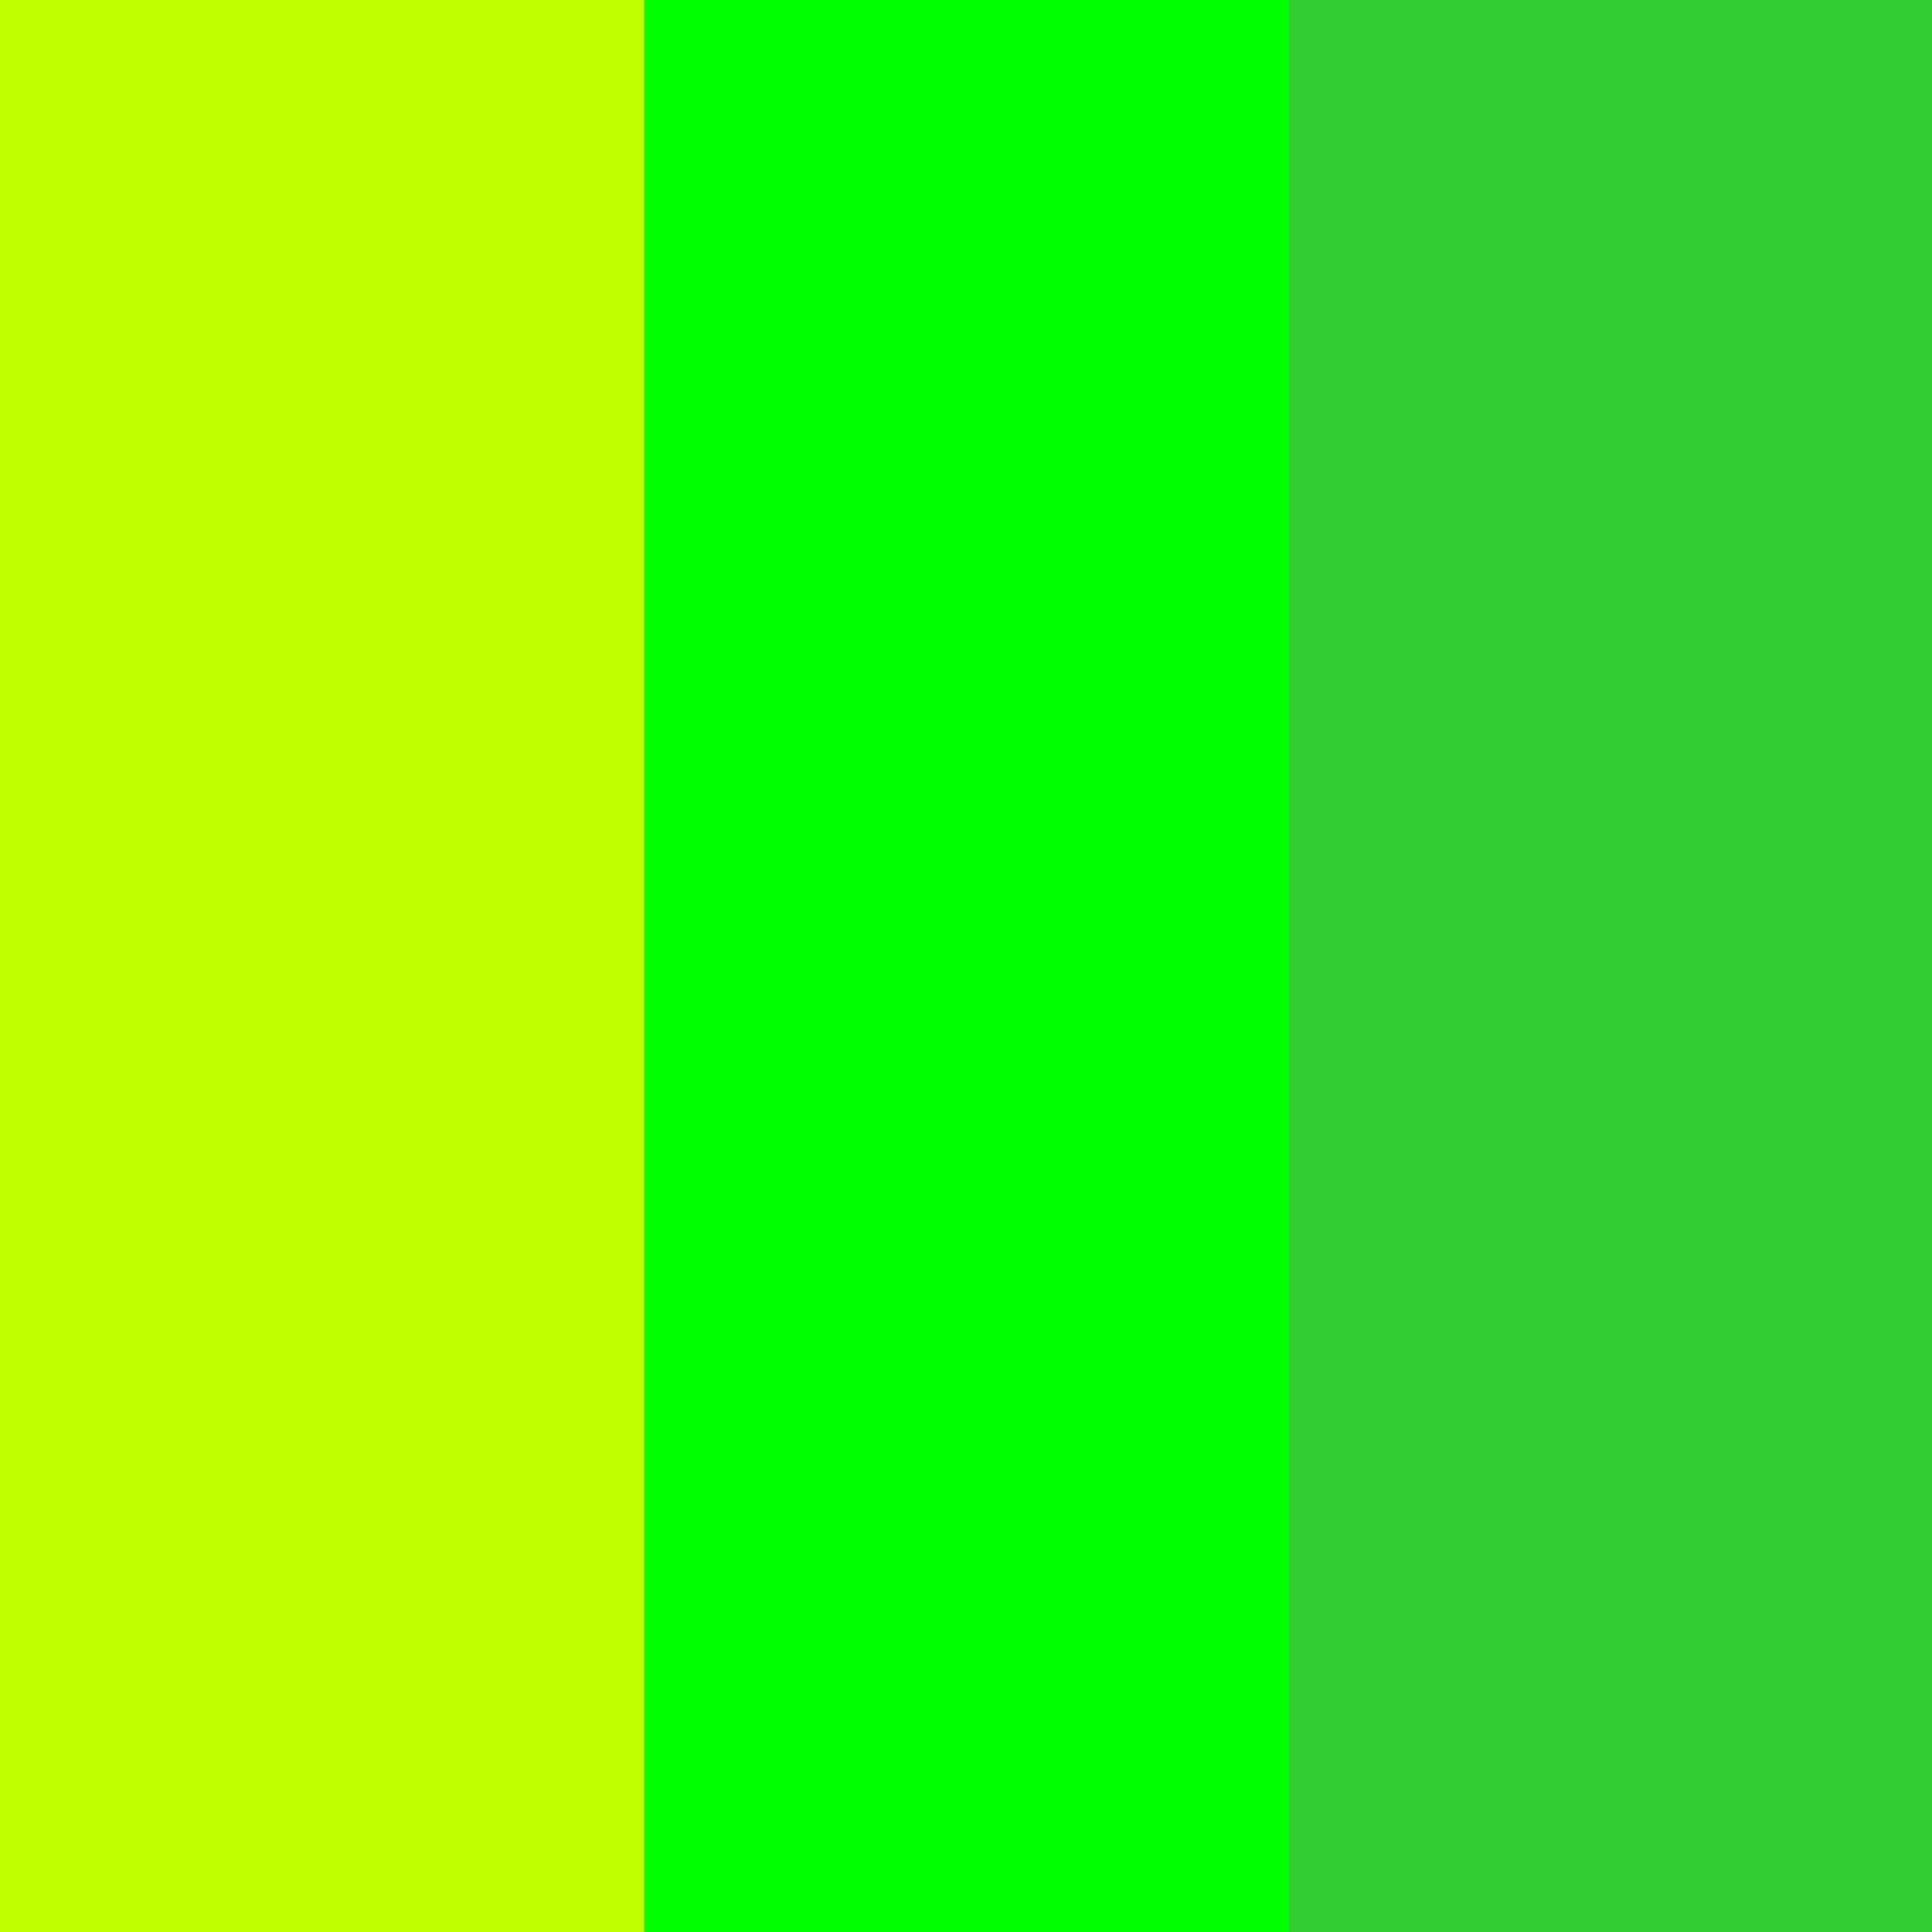 lime color background - photo #35